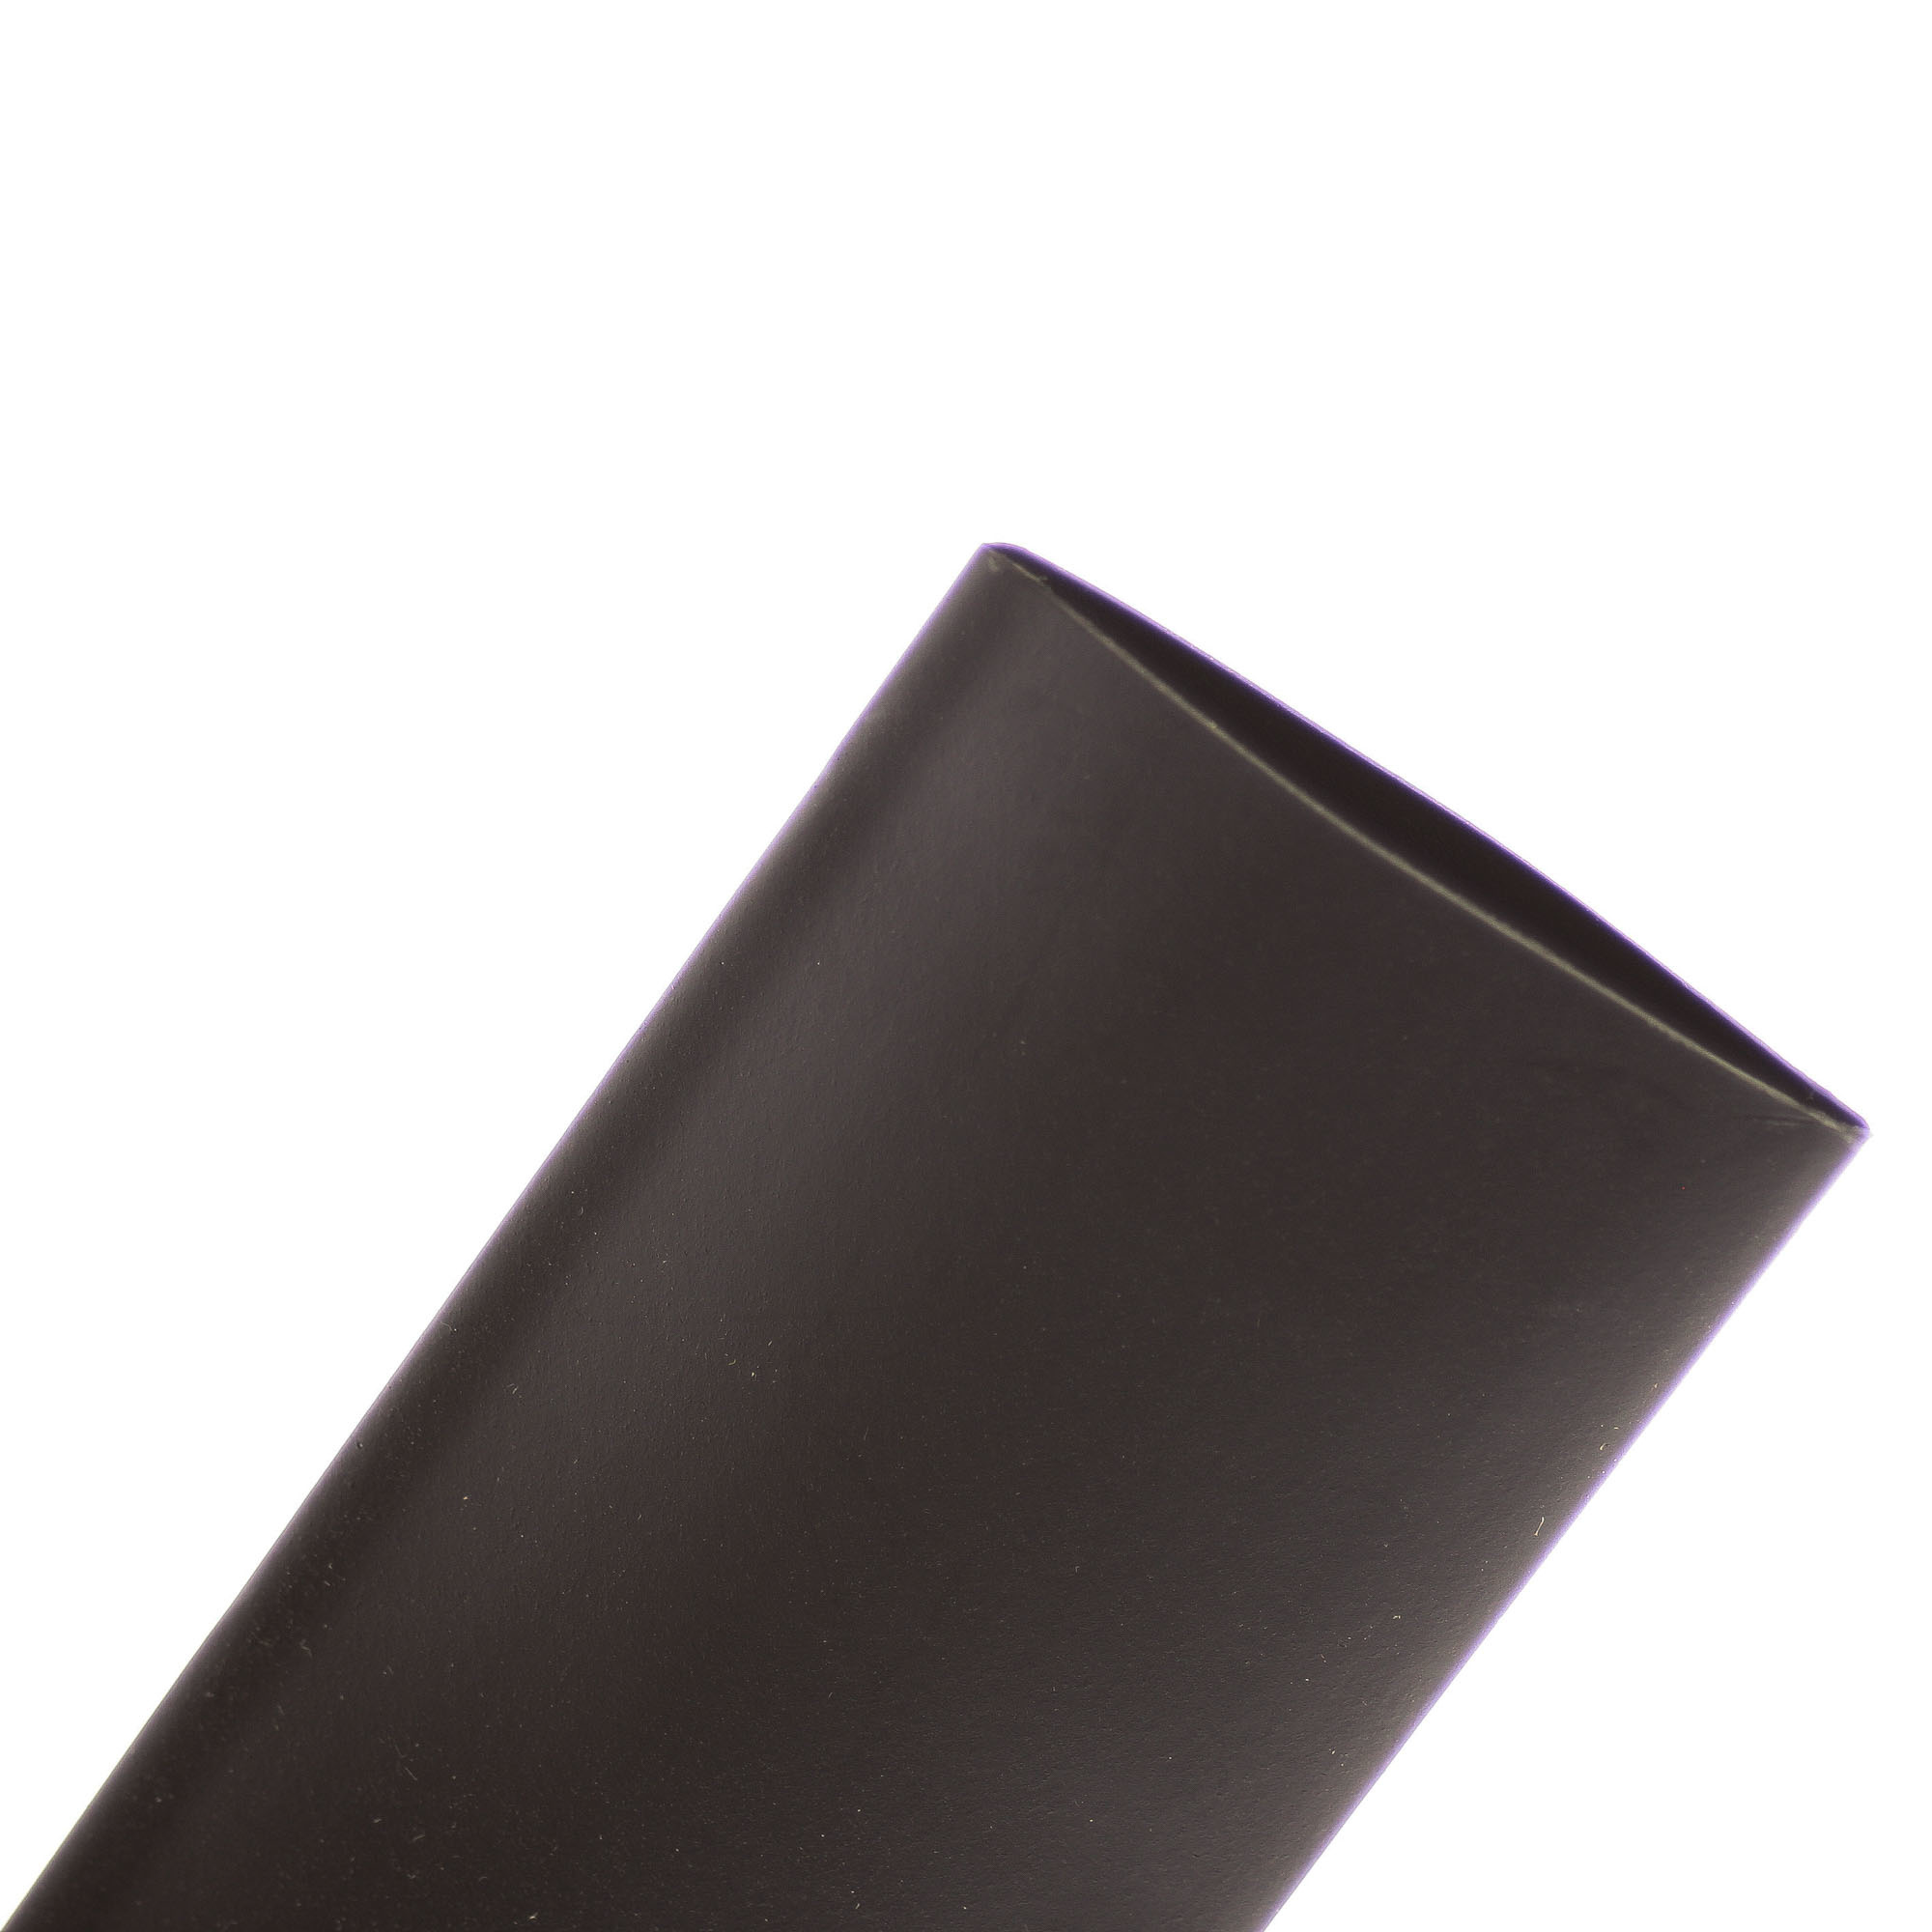 Heat shrink tube 2:1 / 25,4-12,7mm, 3,3m, black